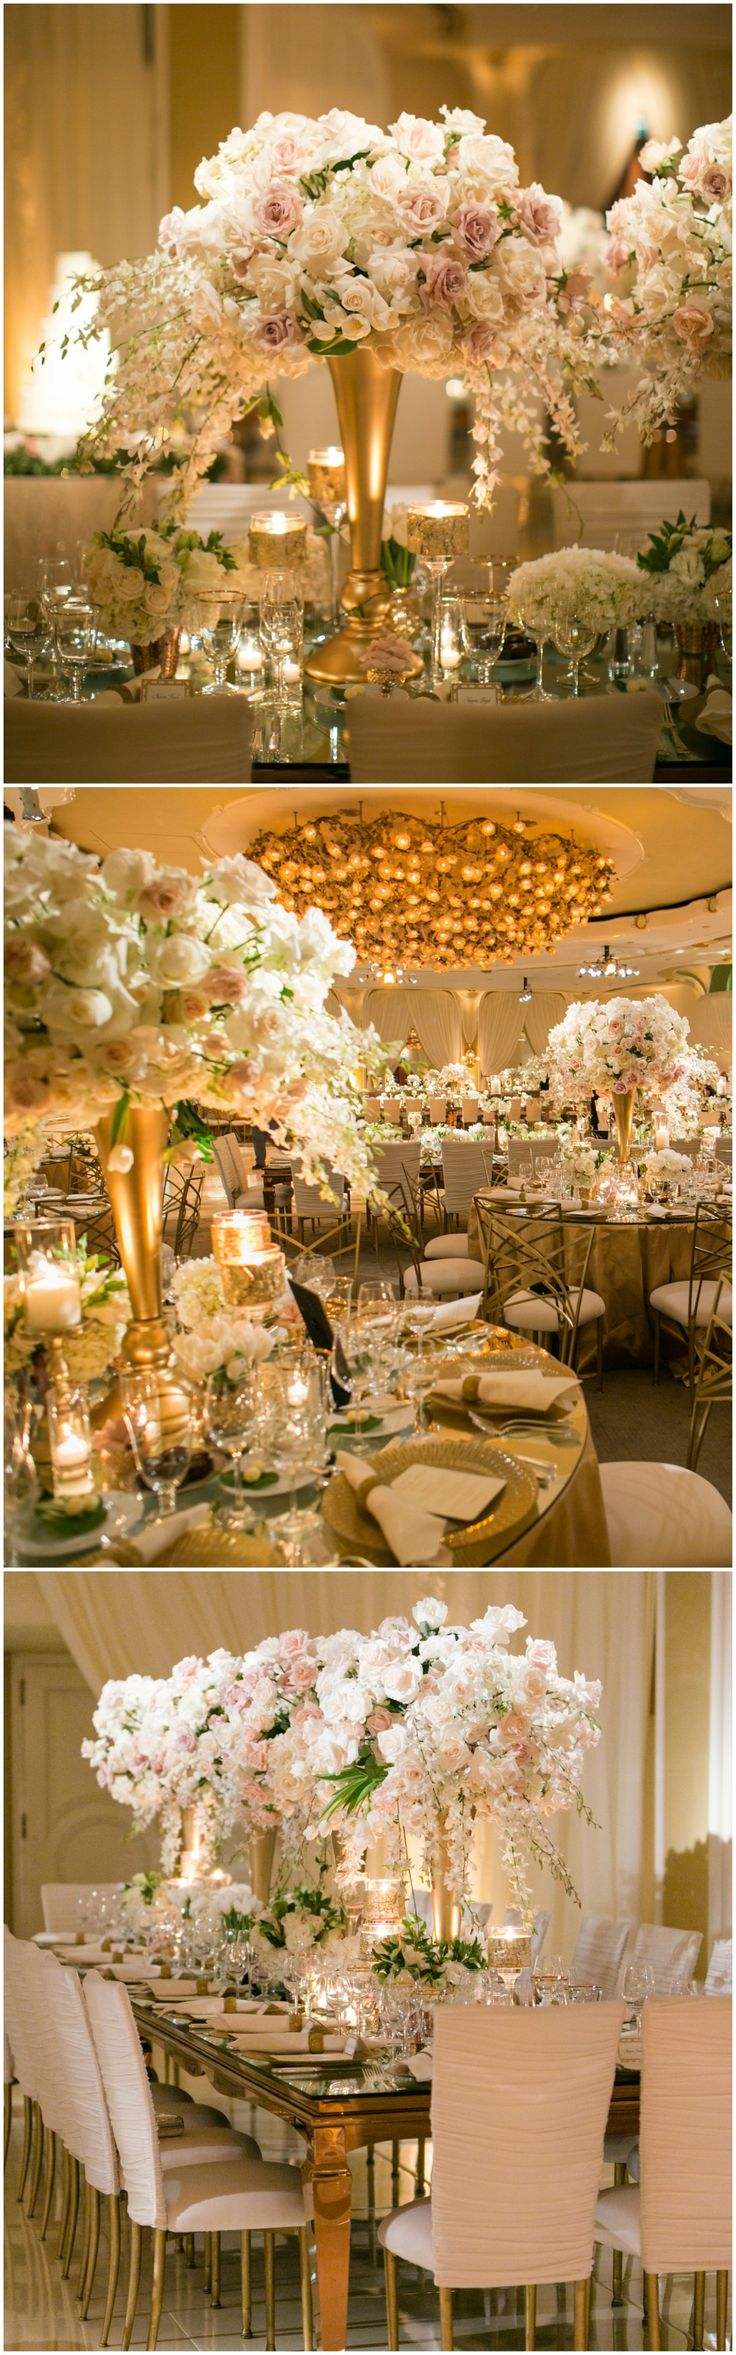 Black tie wedding, formal indoor wedding reception, tall white and pastel pink floral centerpieces, roses, gold vases, elegant table design // Samuel Lippke Studios